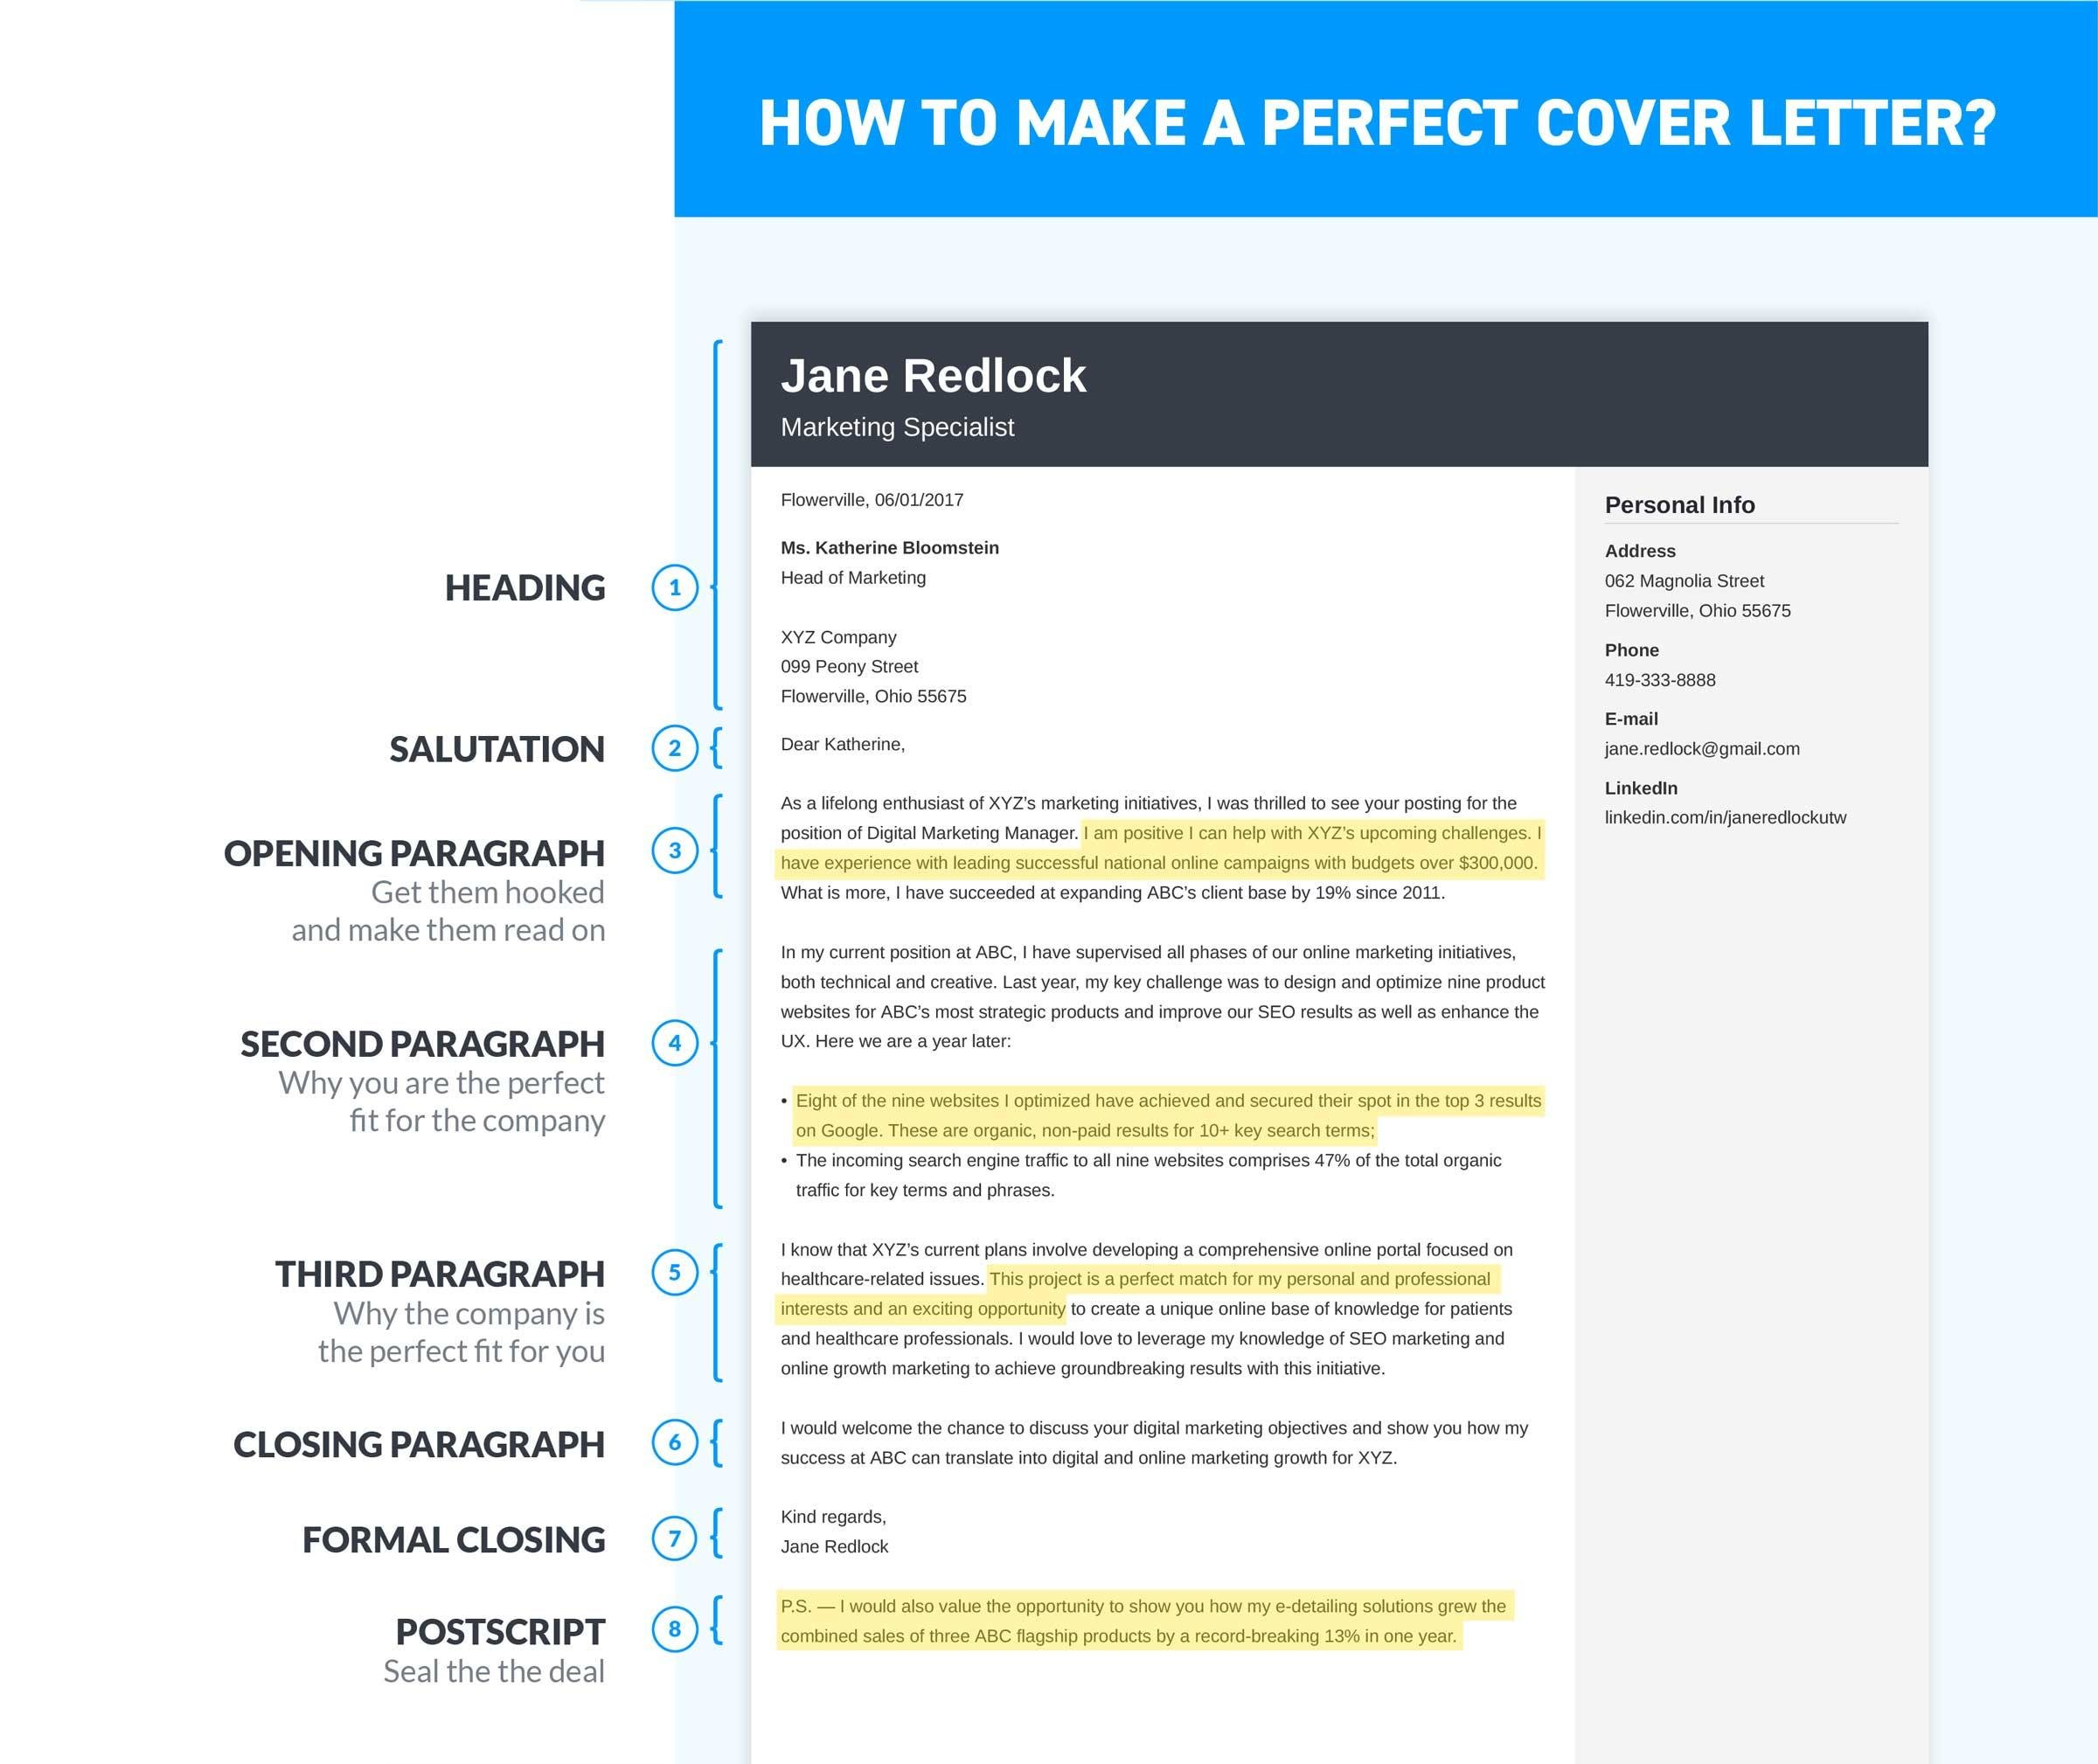 how to make a perfect cover letter infographic - How To Cover Letter